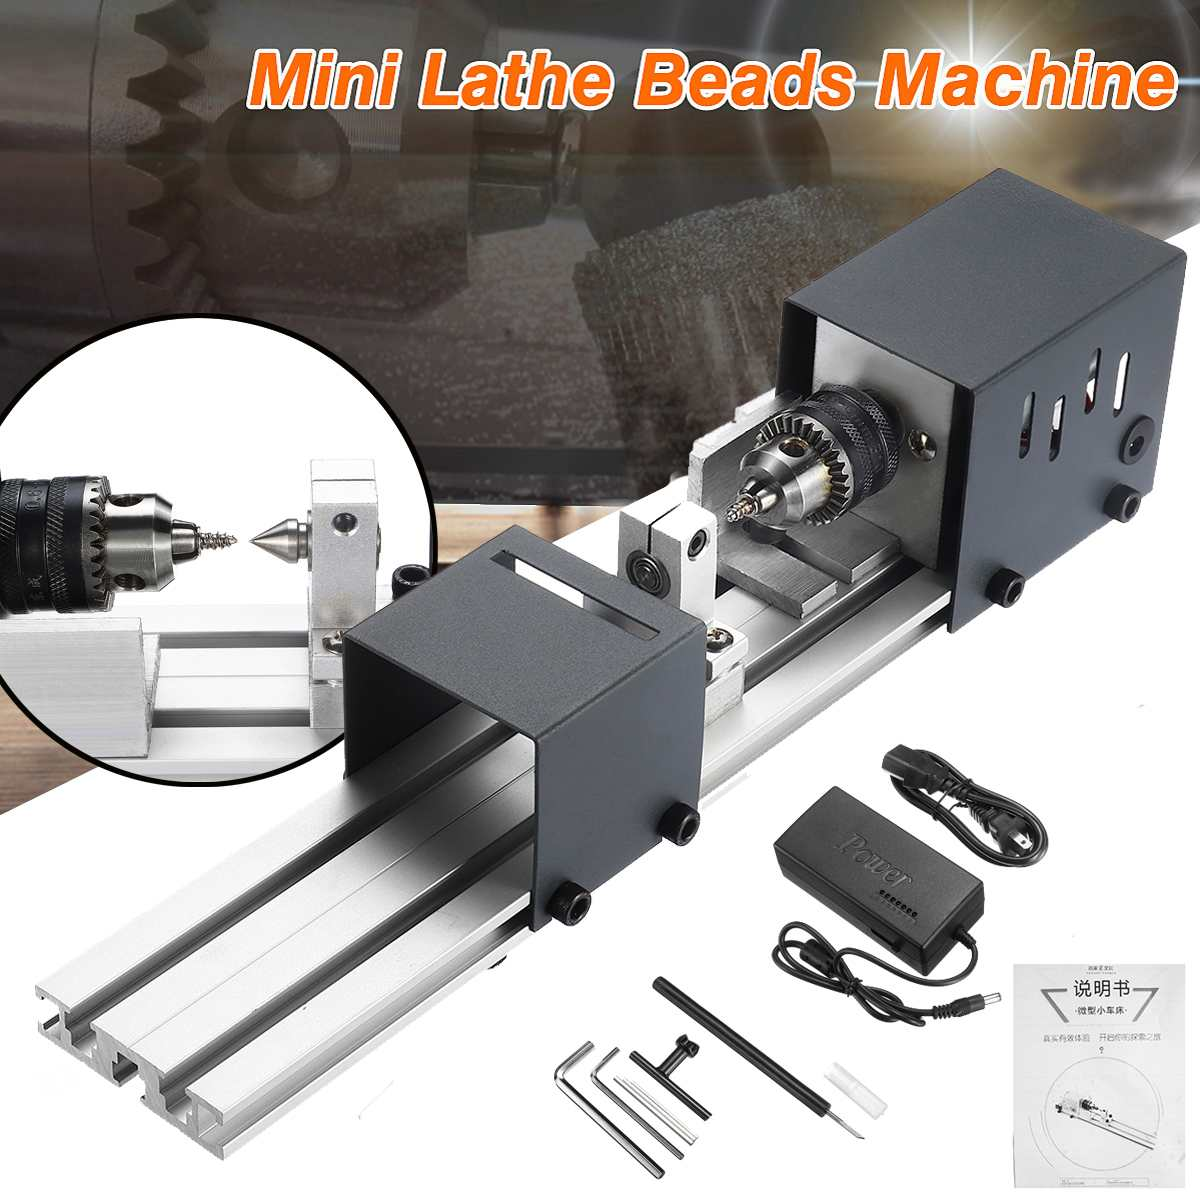 80W DC 24V Mini Lathe Beads Machine Woodworking DIY Lathe Standard Set Polishing Cutting Drill Rotary Tool